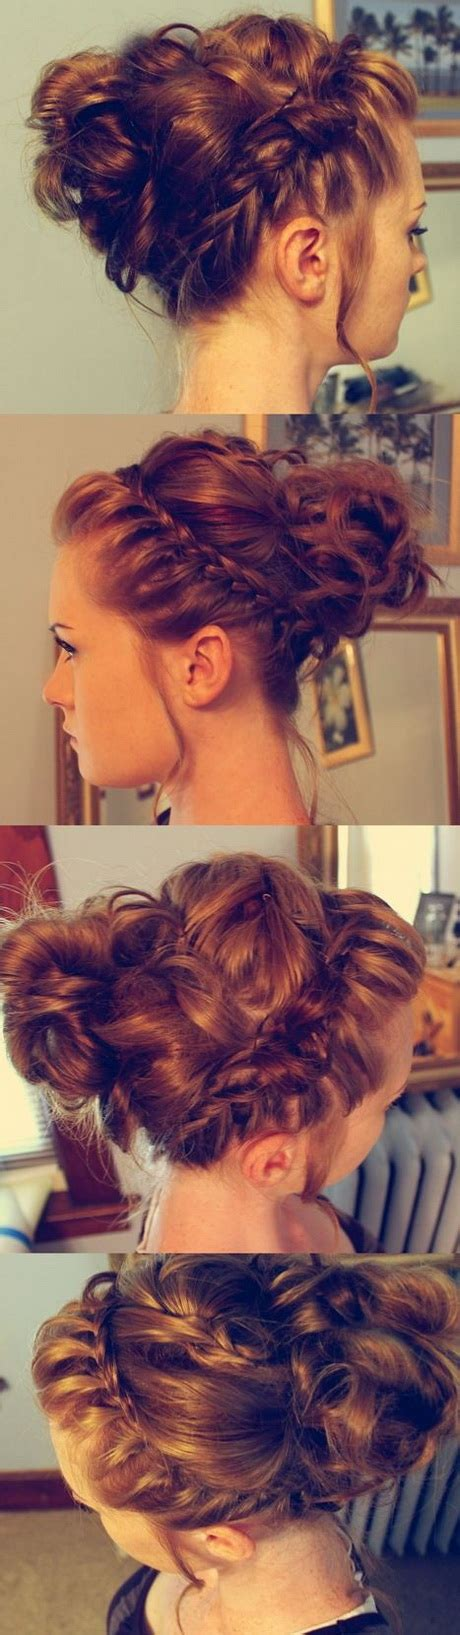 prom hairstyles 2015 hair style prom hair styles 2015